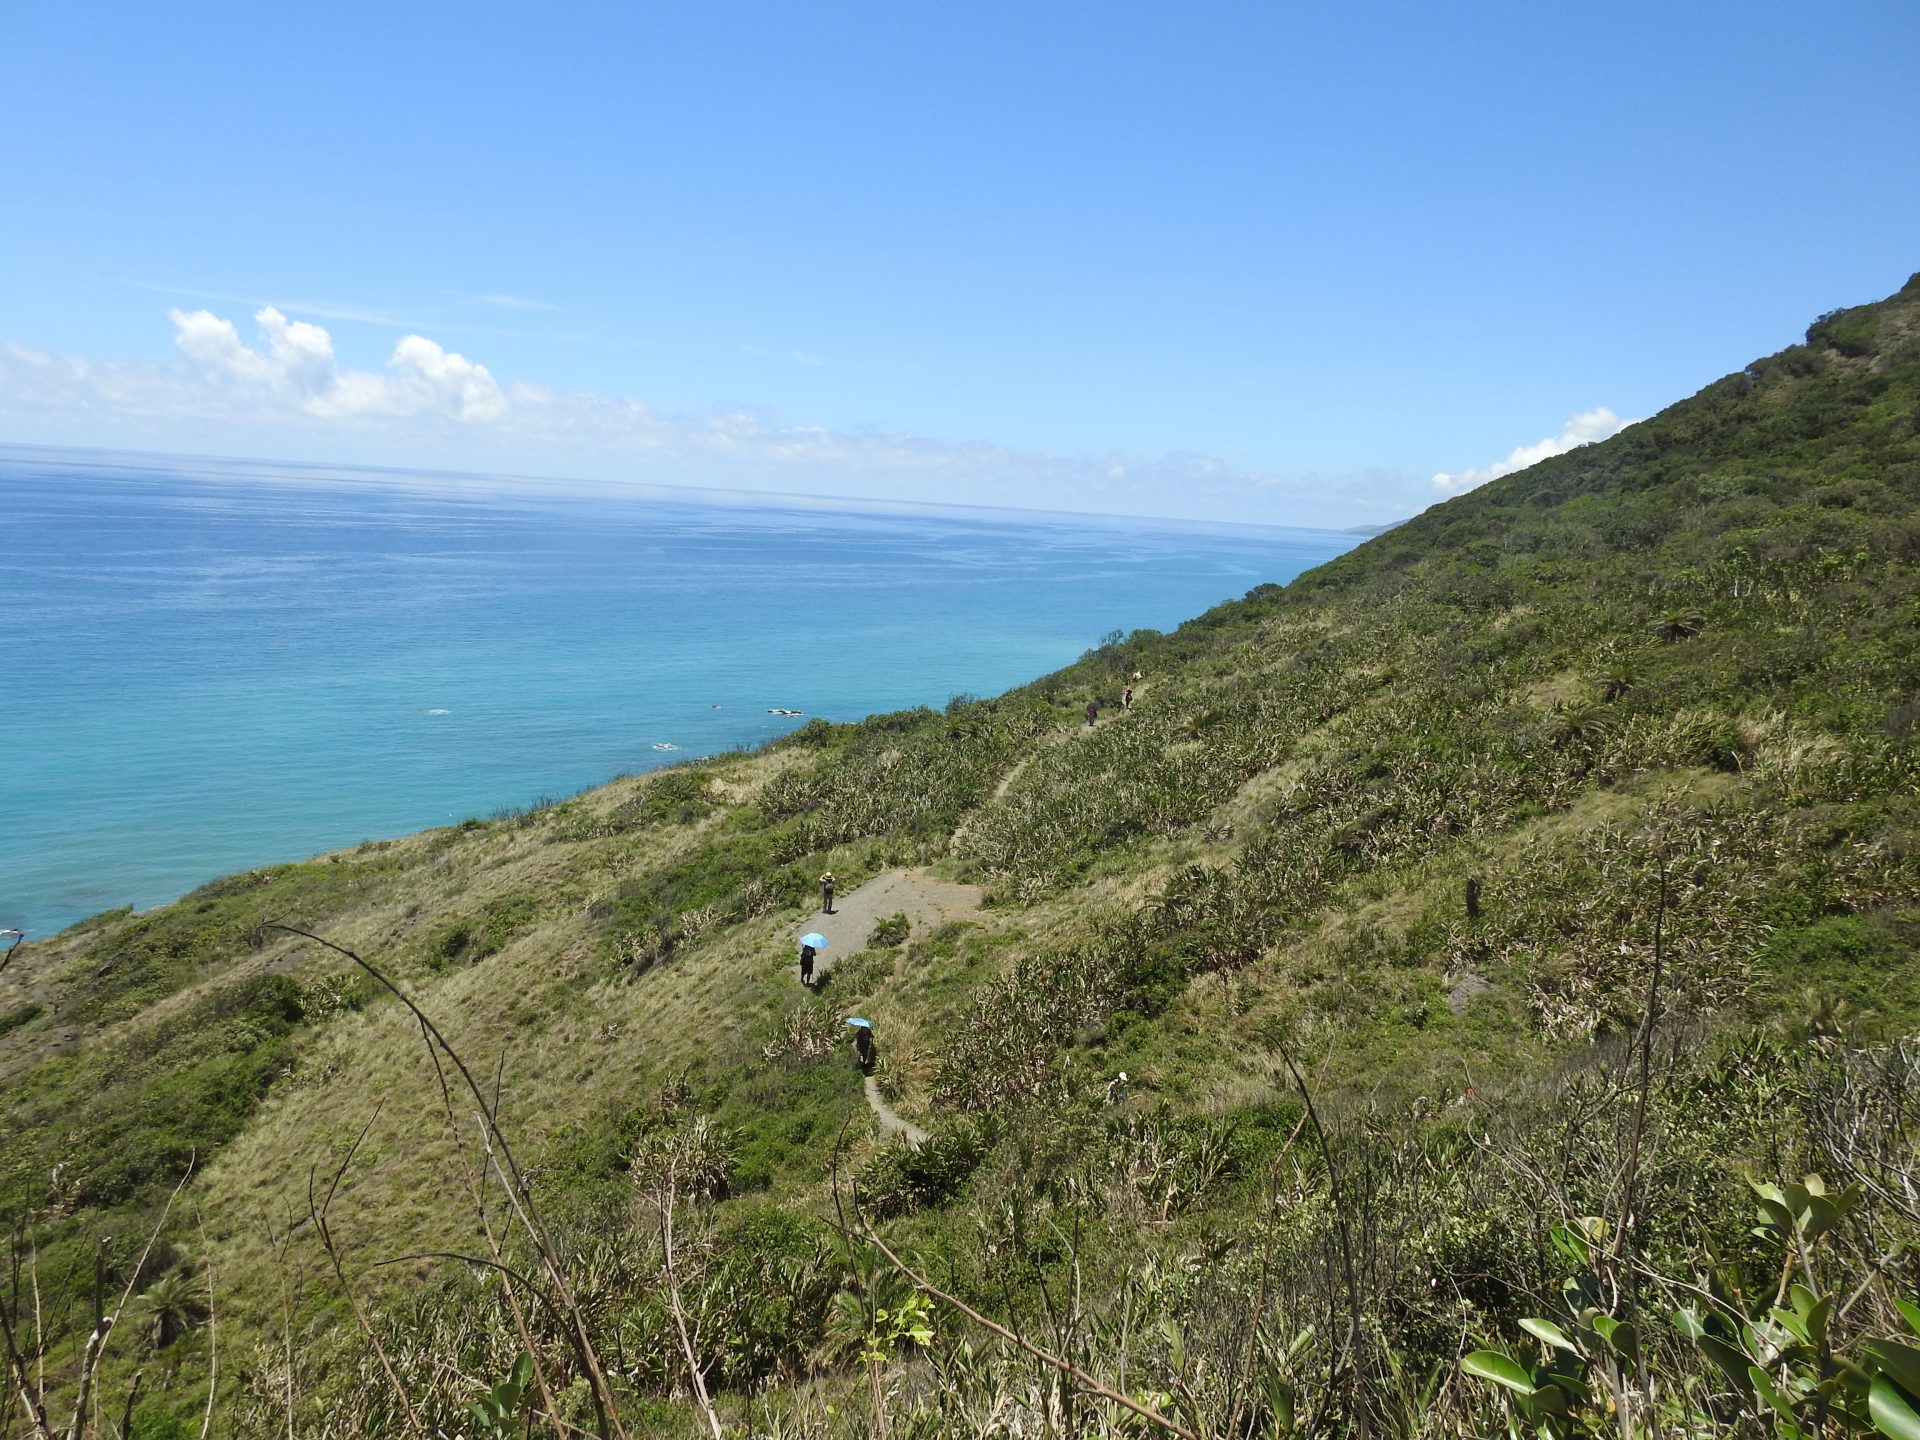 It's strenuous to hike along Alangyi Ancient Trail. (Image: Billy Shyu / Vision Times)